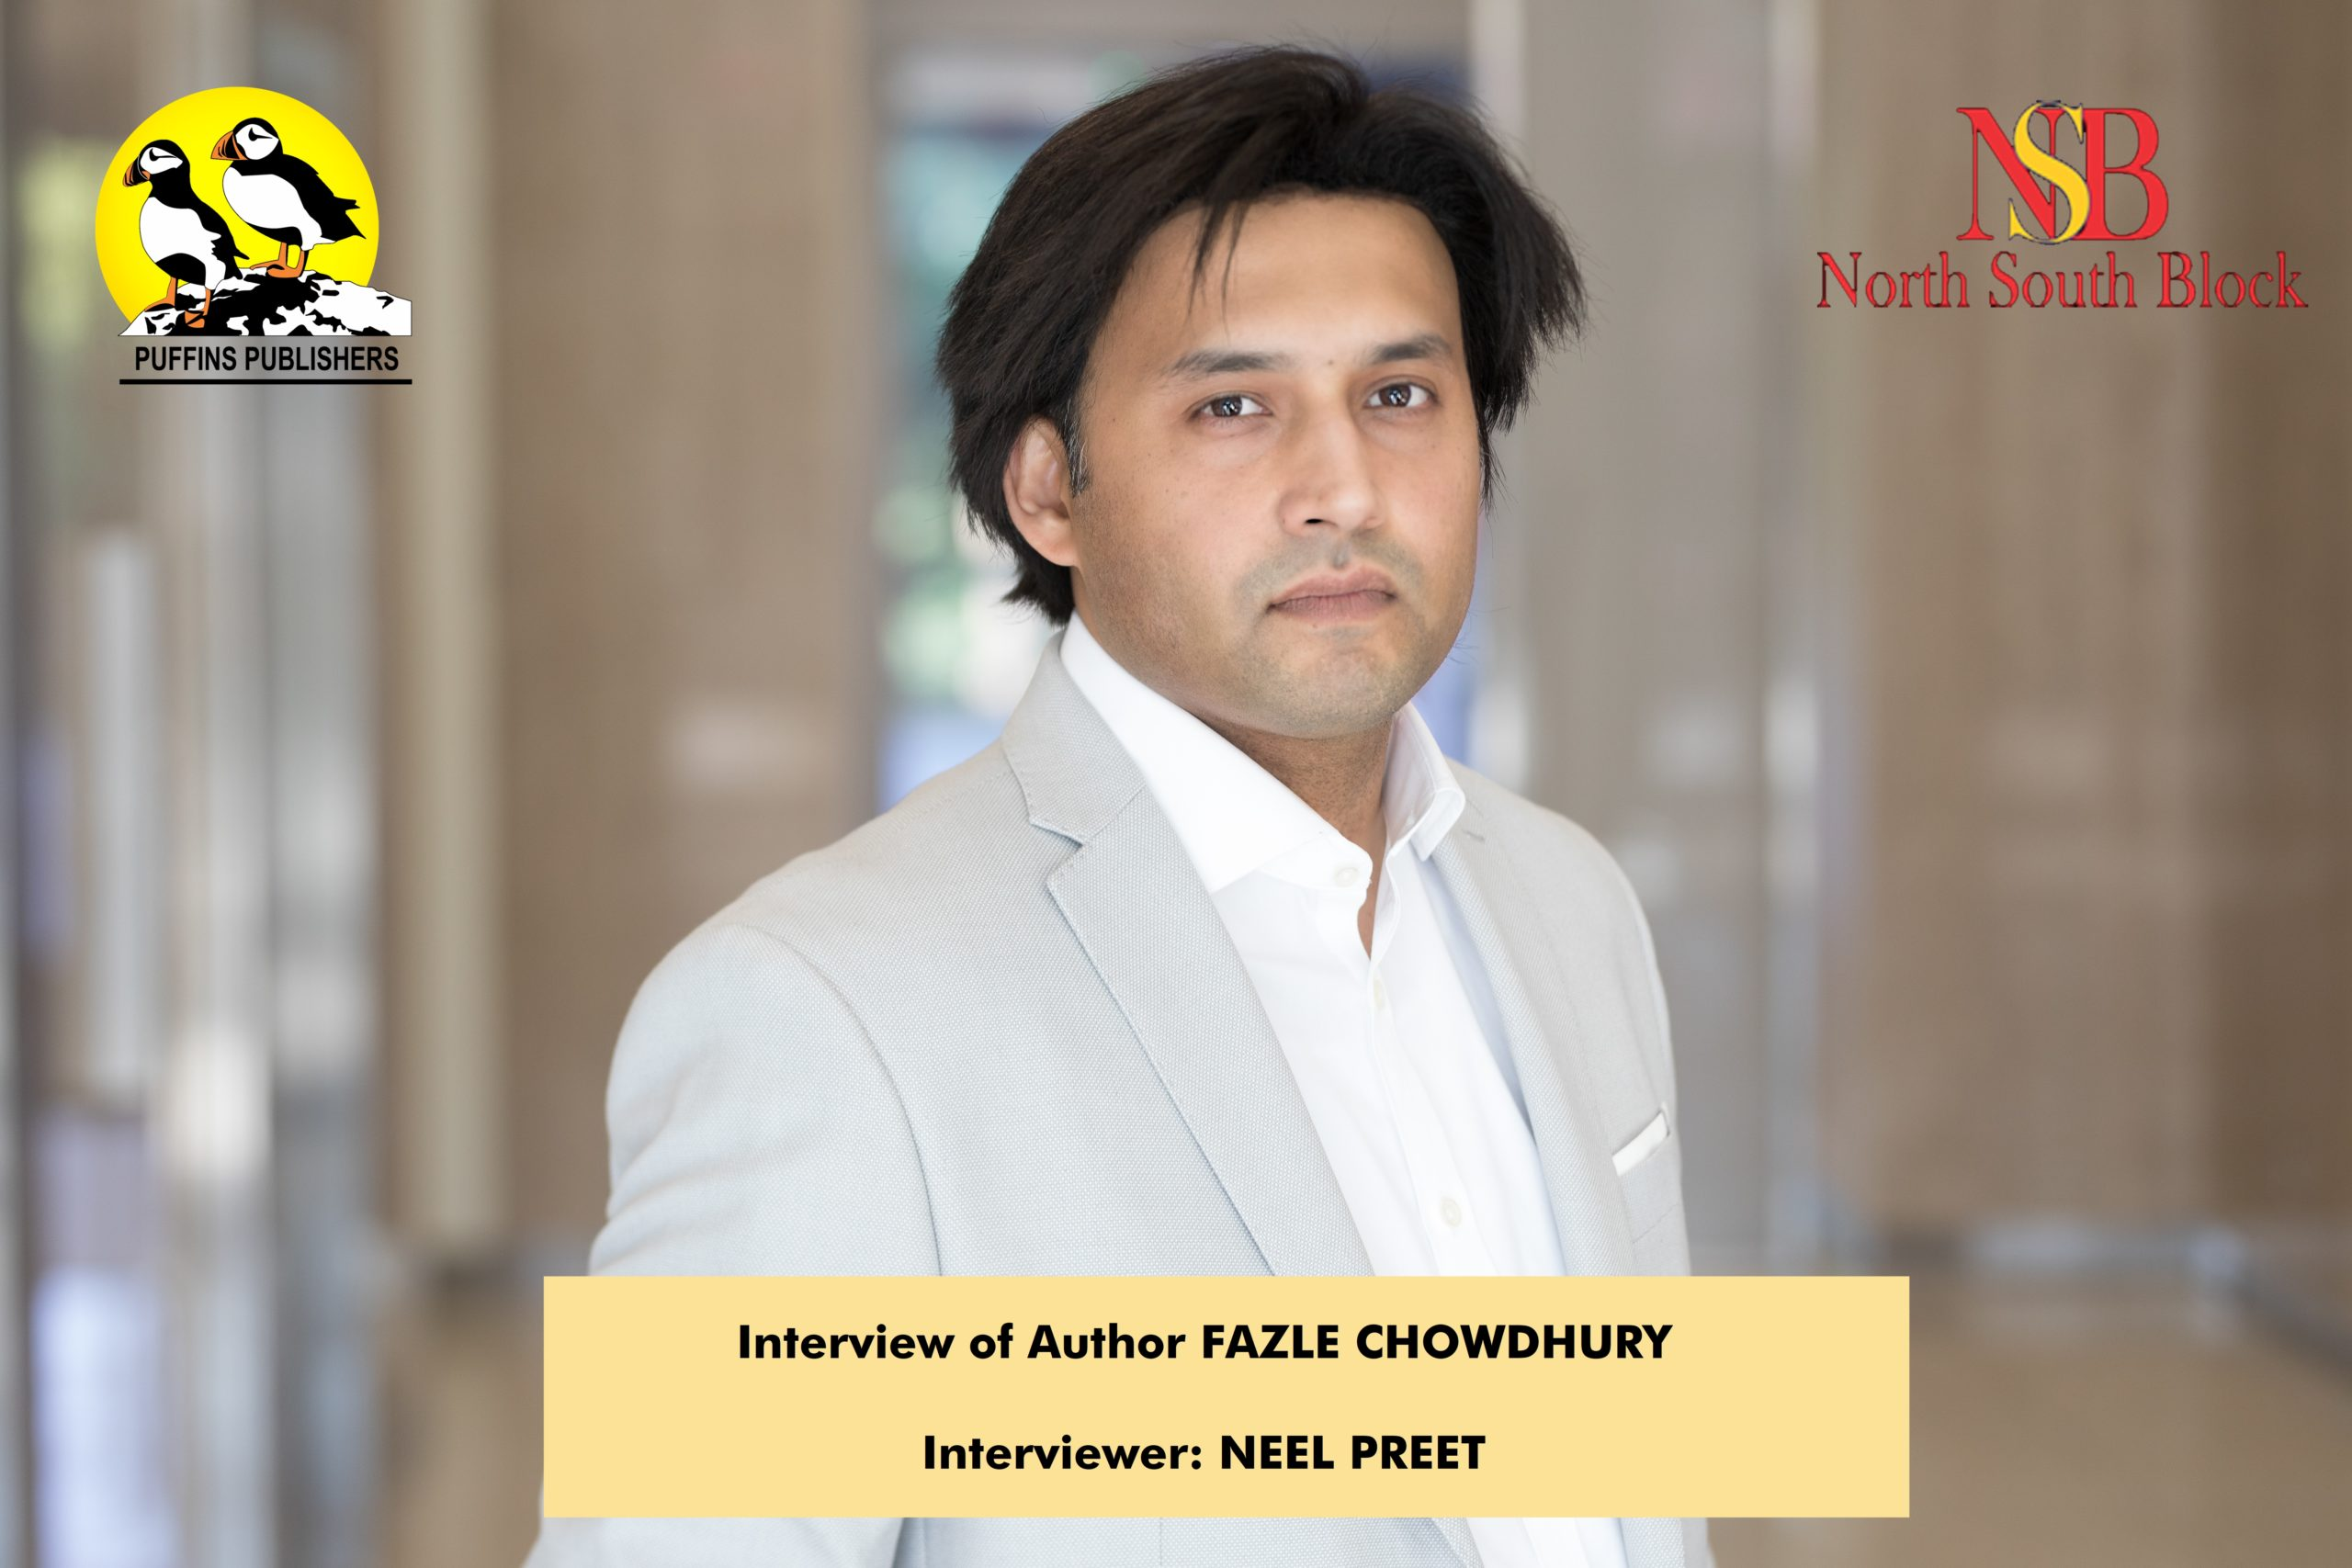 Interview Of Author FAZLE CHOWDHURY